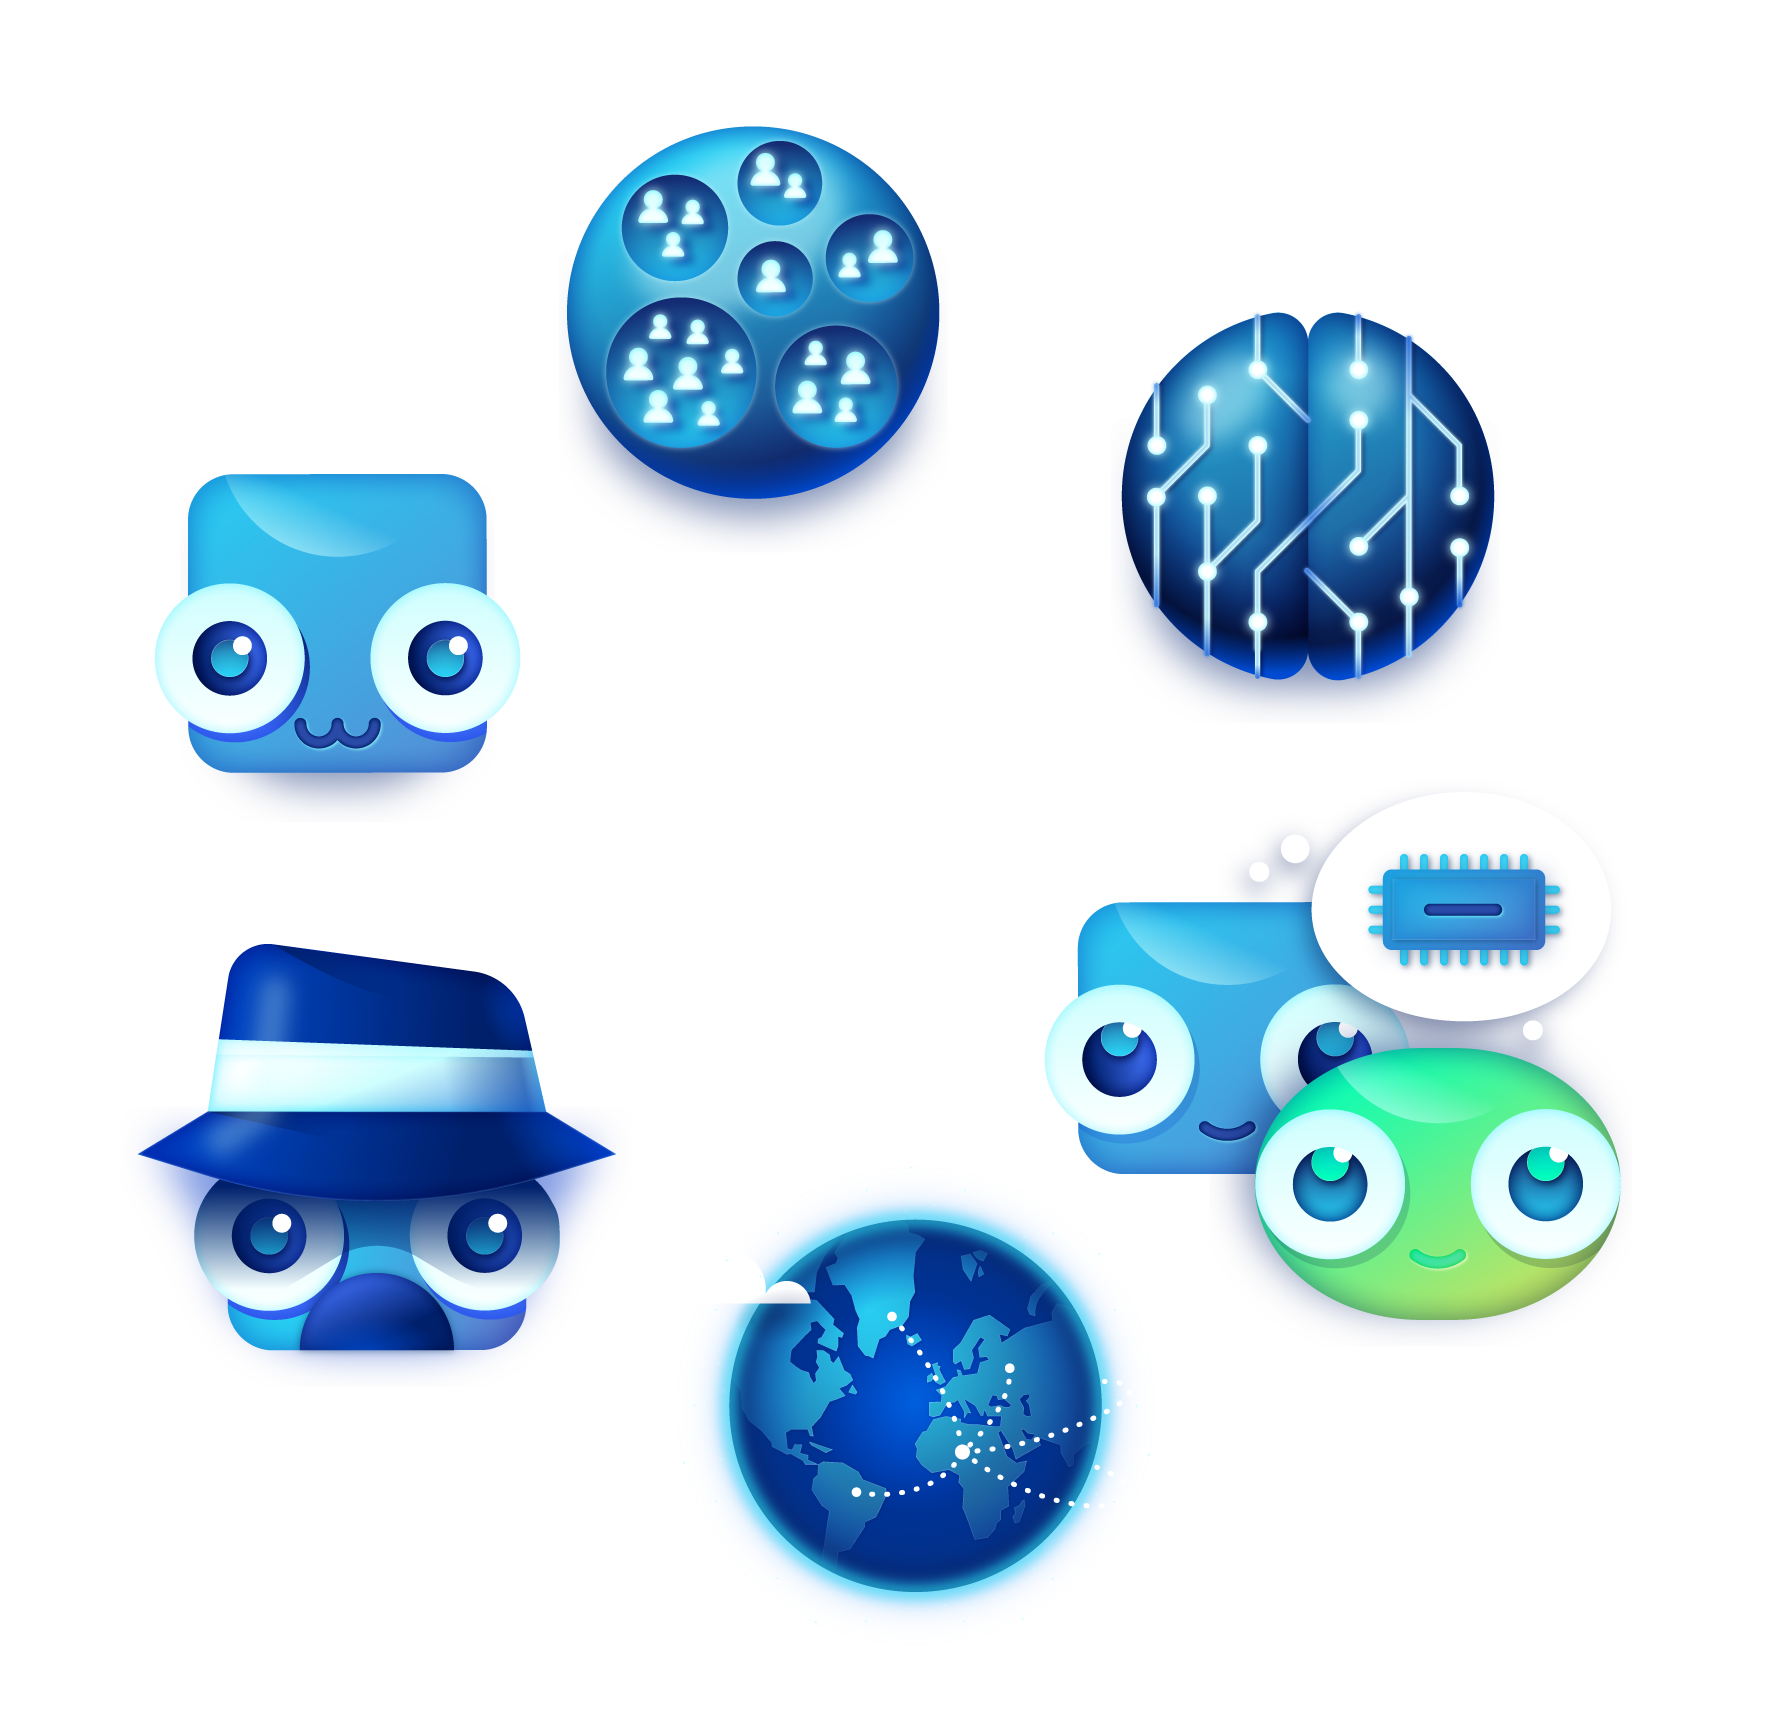 bigabid technology icons